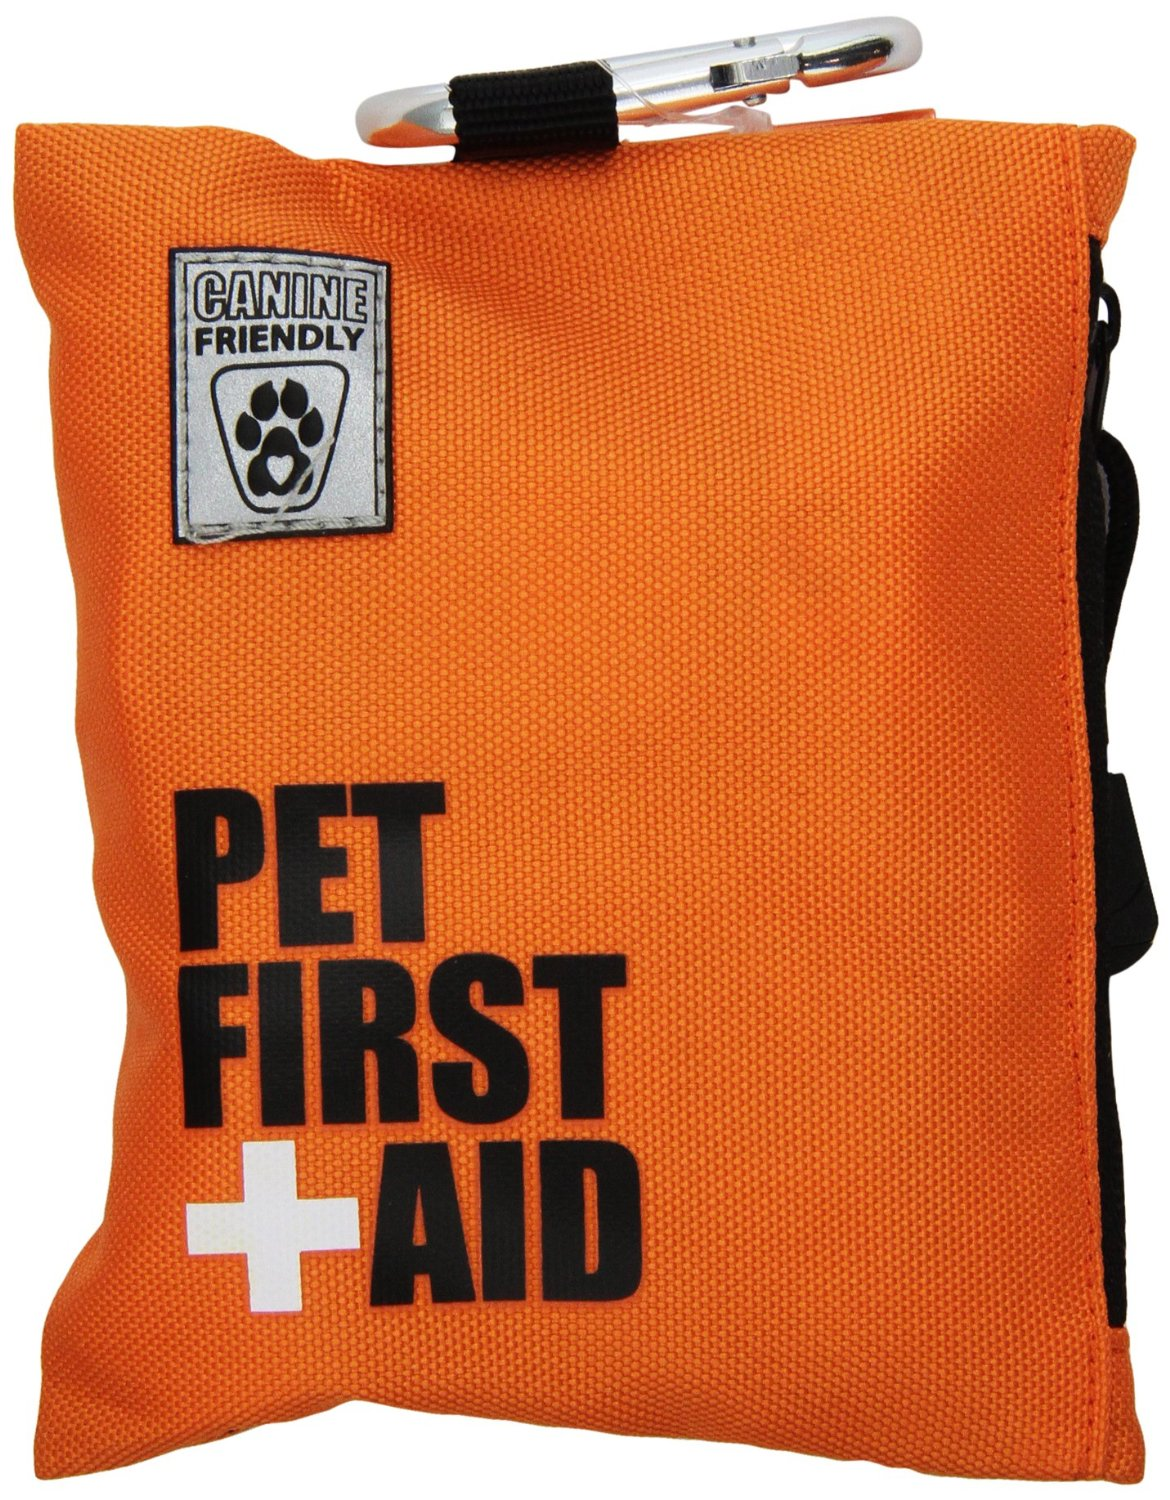 Pet Healthcare & First Aid